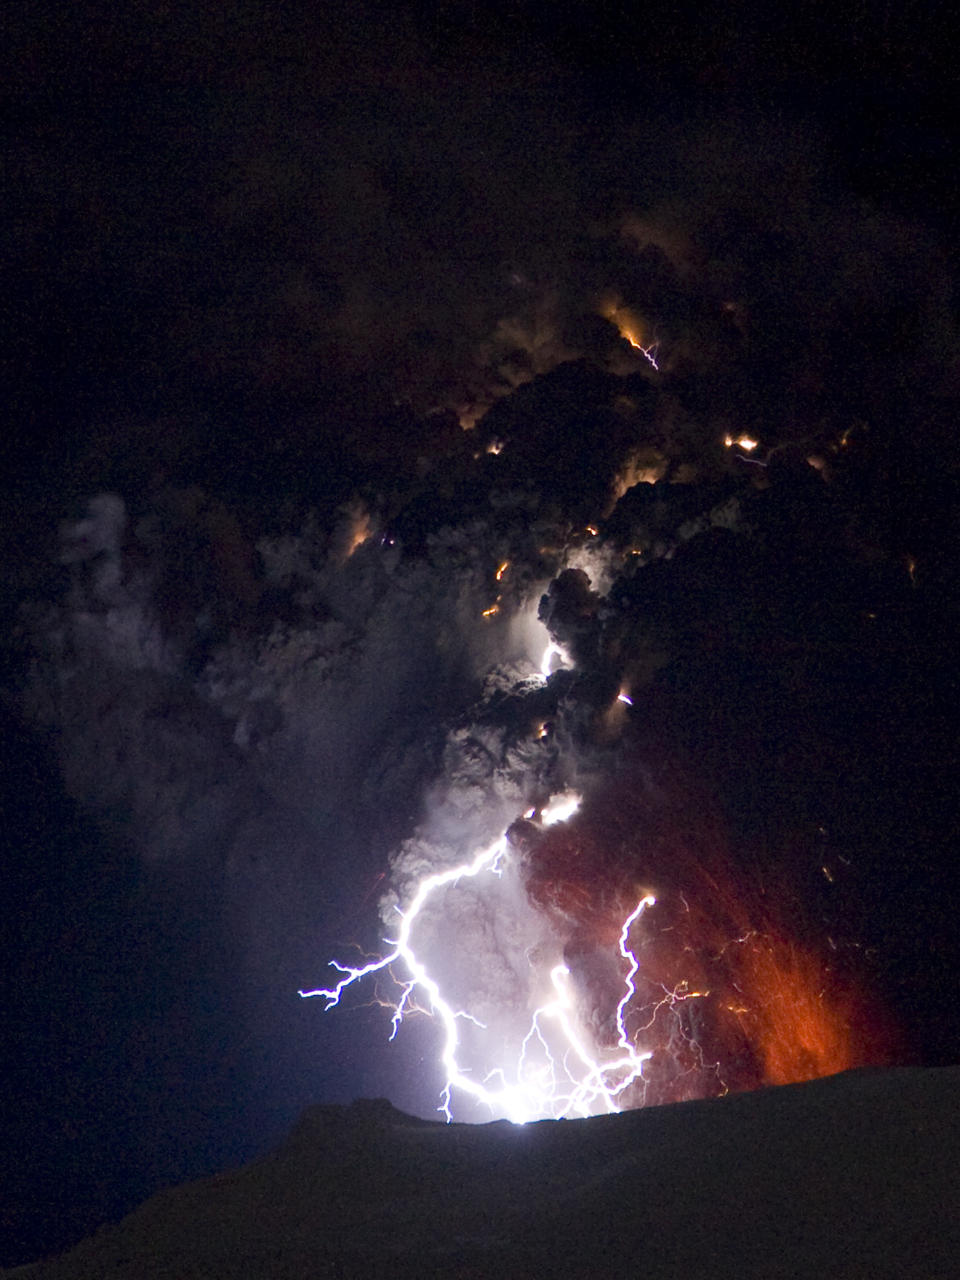 Lighting seen amid the lava and ash erupting from the vent of the Eyjafjallajokull volcano in central Iceland early morning Sunday April 18 2010 as it continues to vent into the skies over Europe. Low-energy lightning is sometimes active during eruptions, arcing between particles as they exit the volcanic vent at around 100 metres per second. The dramatic volcanic eruption which has closed Europe's airspace for days has entered a new phase - producing less smoke but bubbling with lava and throwing up chunks of molten rock. (AP Photo/ Jon Pall Vilhelmsson